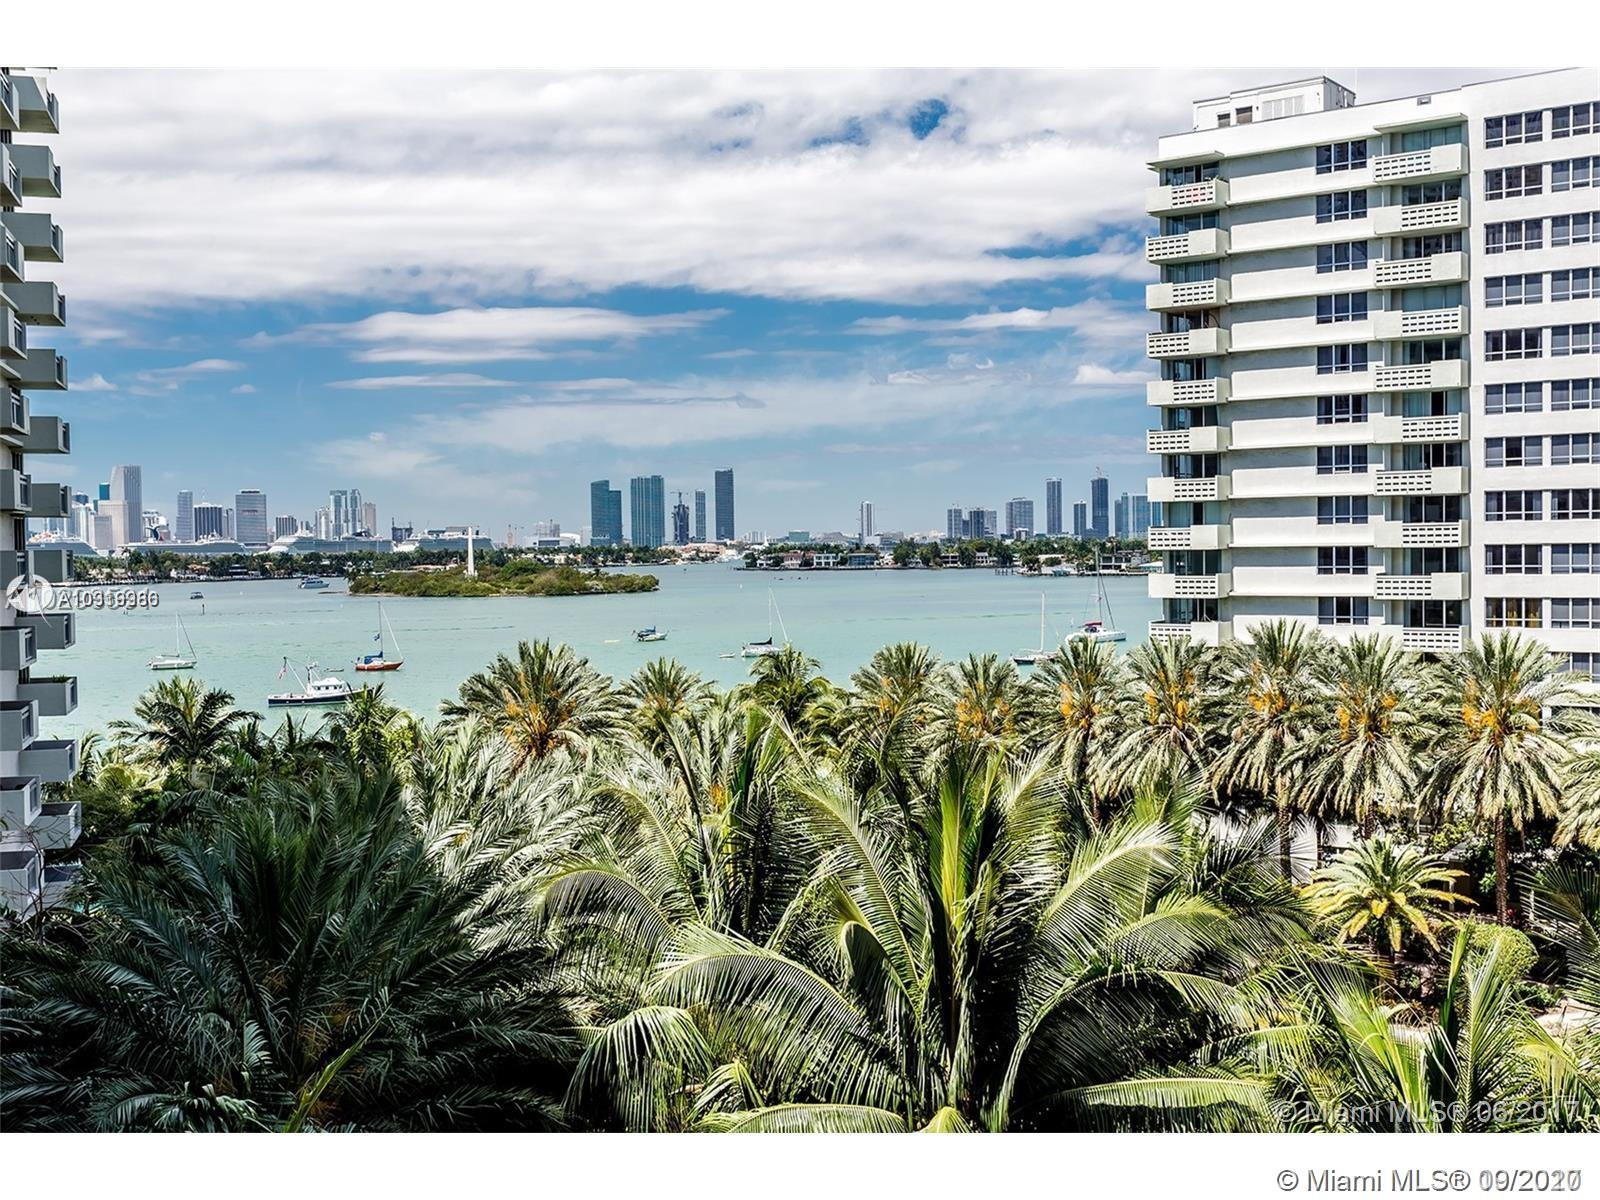 Flamingo South Beach #758S - 1500 Bay Rd #758S, Miami Beach, FL 33139